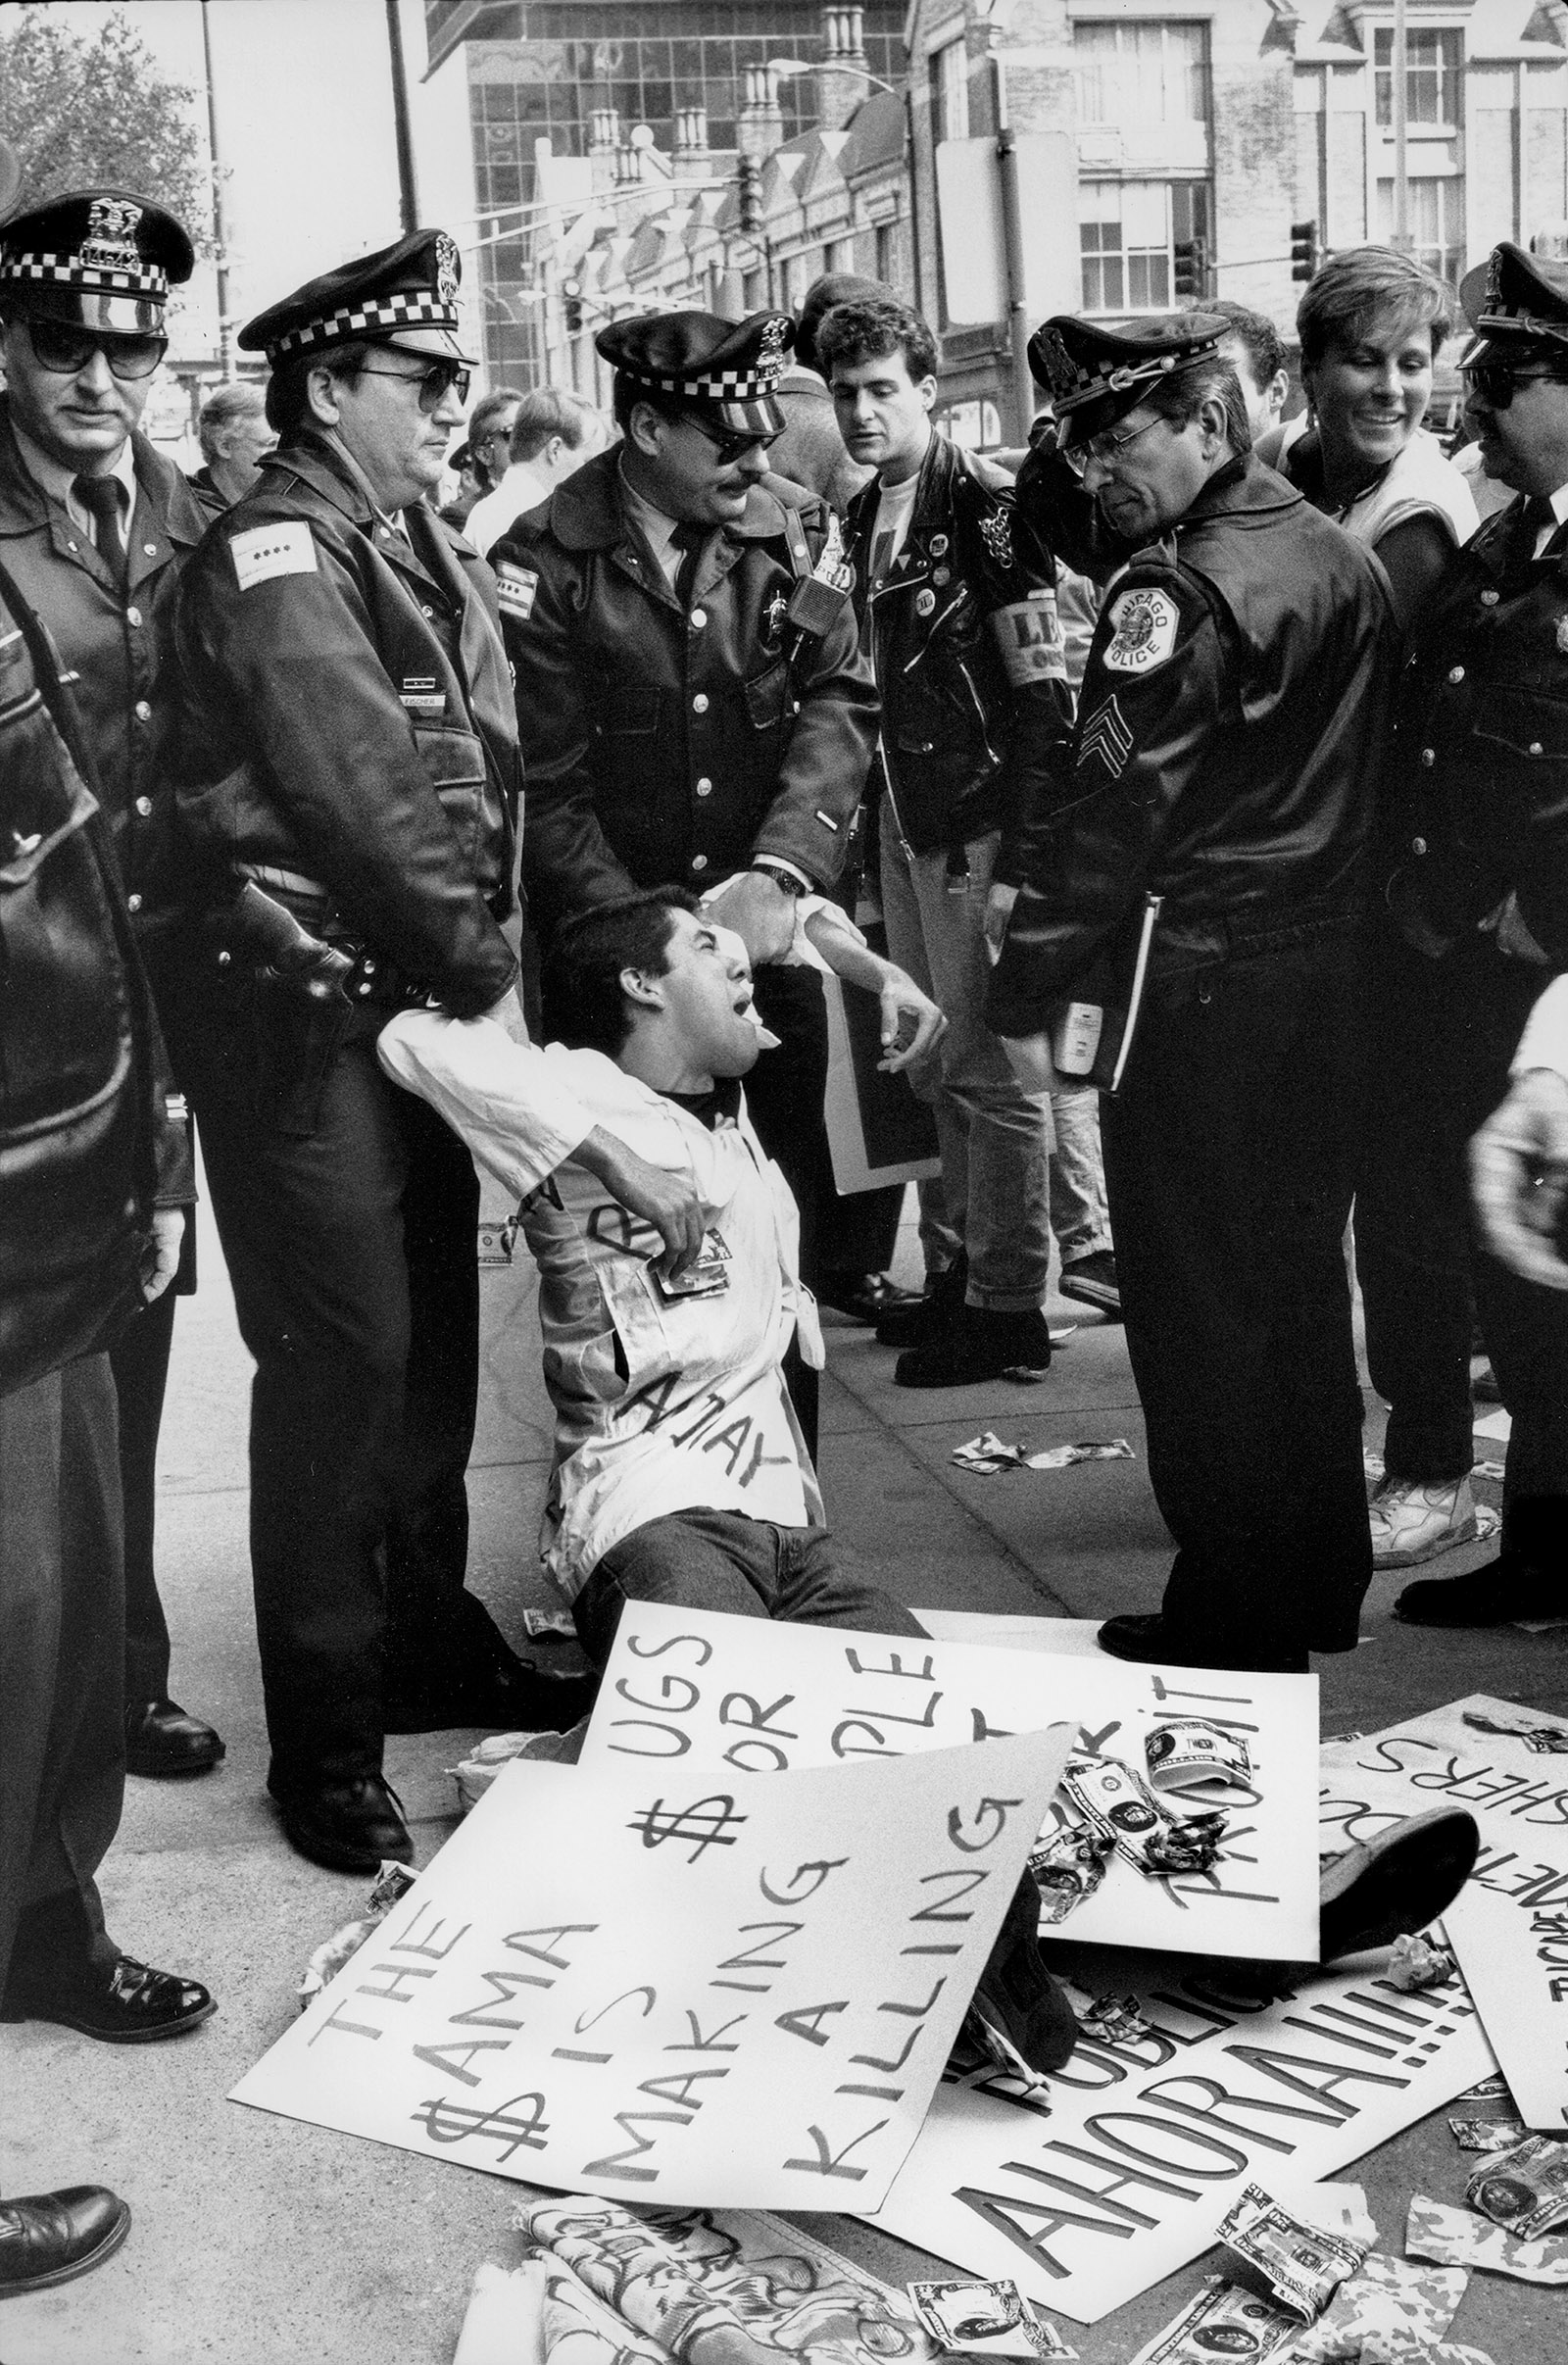 An ACT UP activist being arrested during an AIDS demonstration outside the headquarters of the American Medical Association, Chicago, April 1990